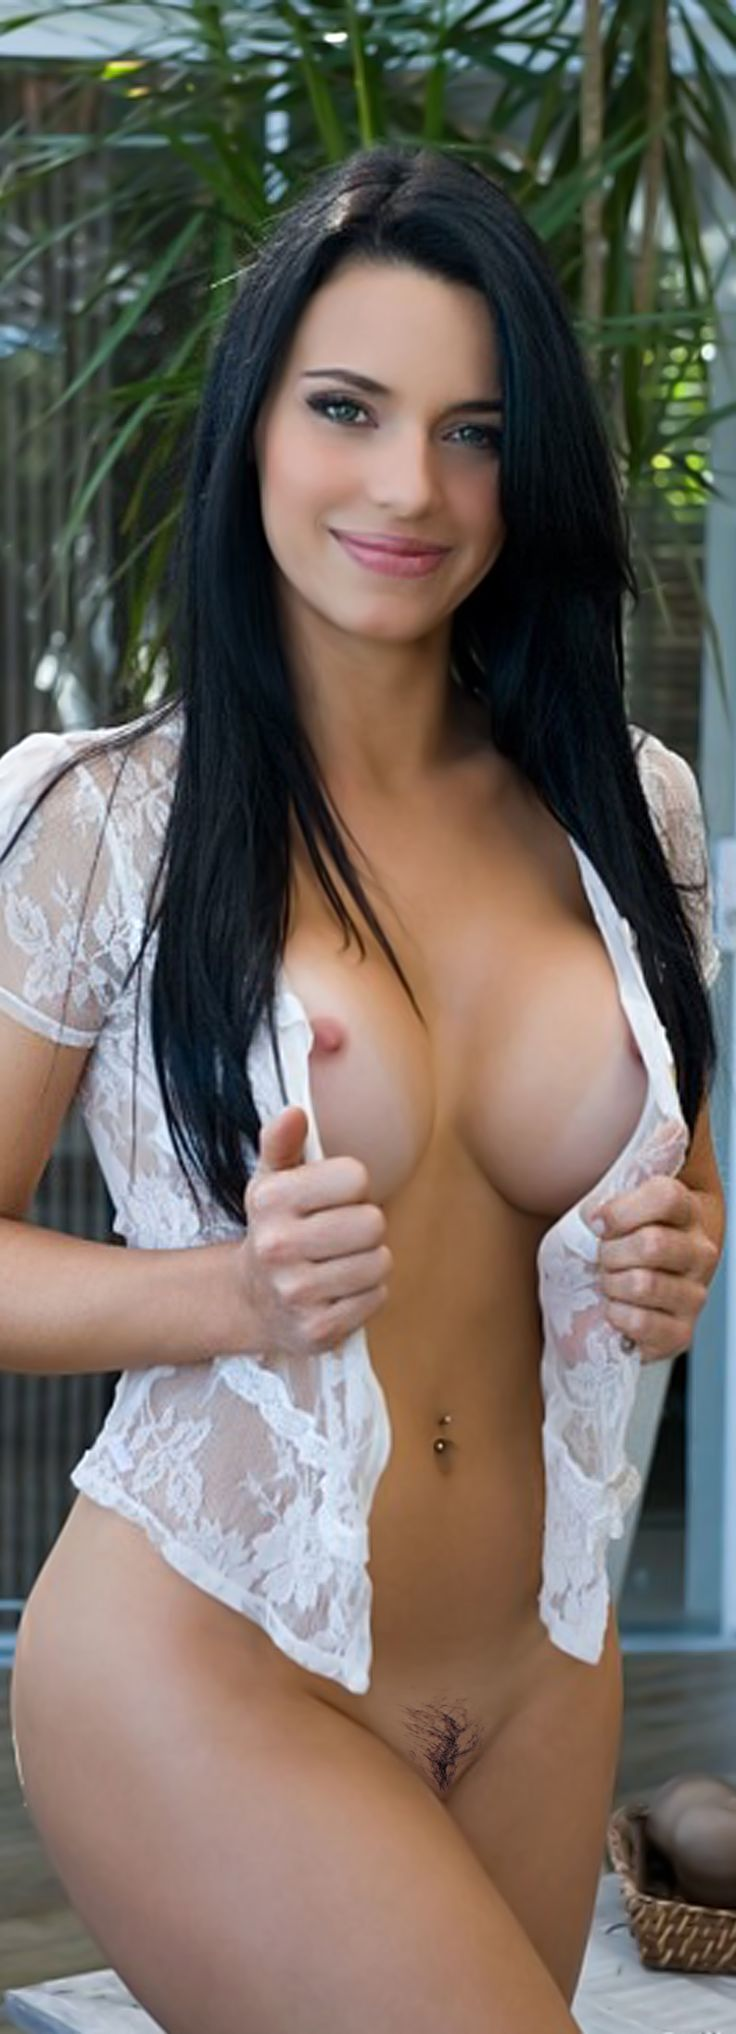 Saudi sexes girl big boobs photo